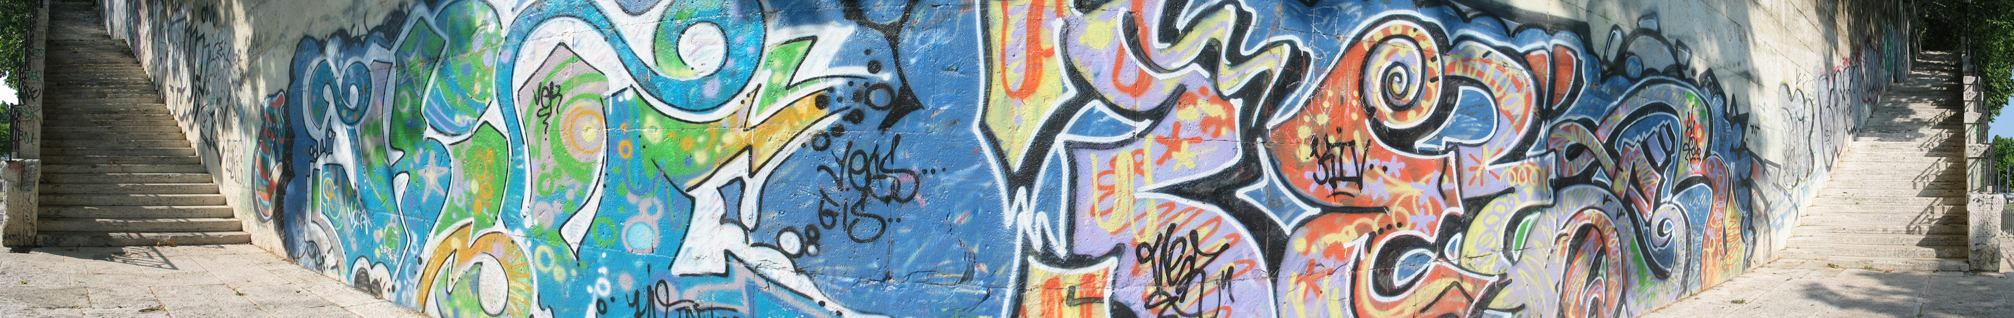 Graffiti on the banks of the Tiber river in Rome, Italy